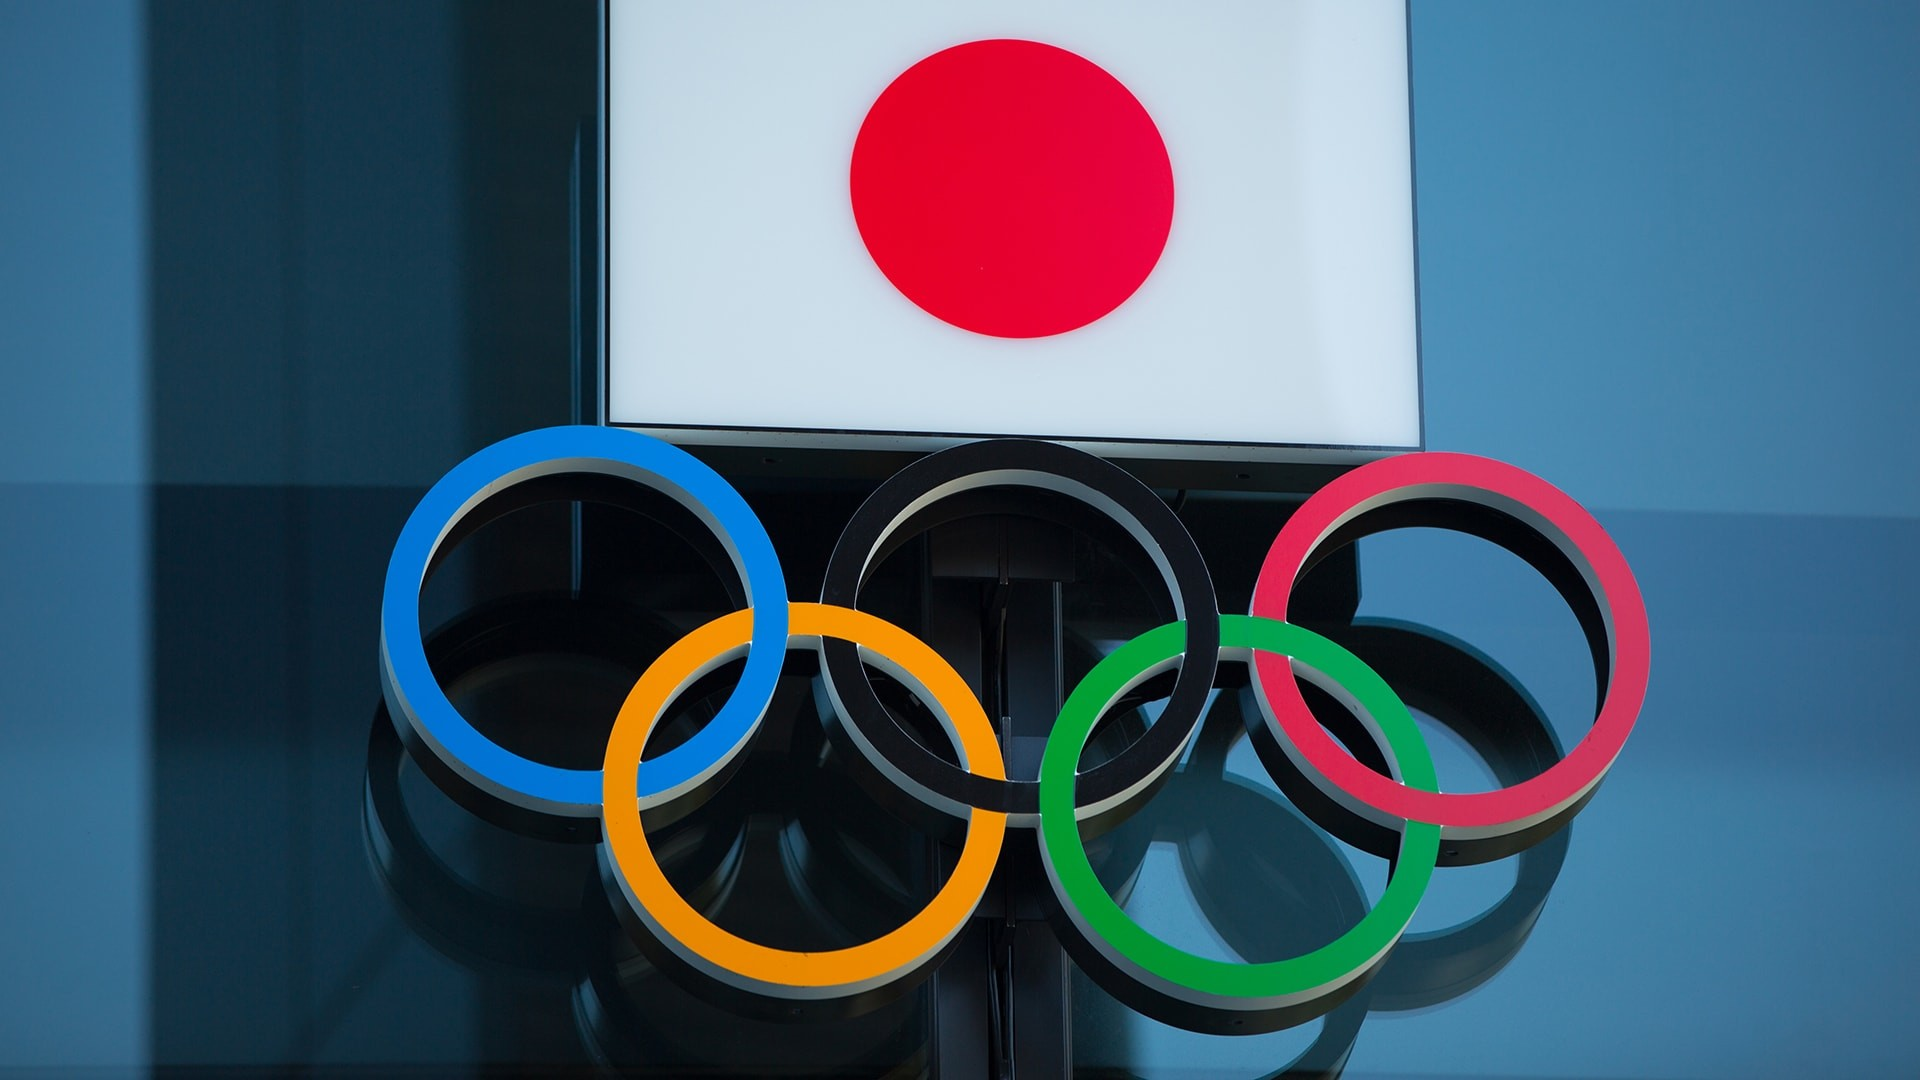 Government announced its proposal for anti-coronavirus measures to Compete in Tokyo Olympics